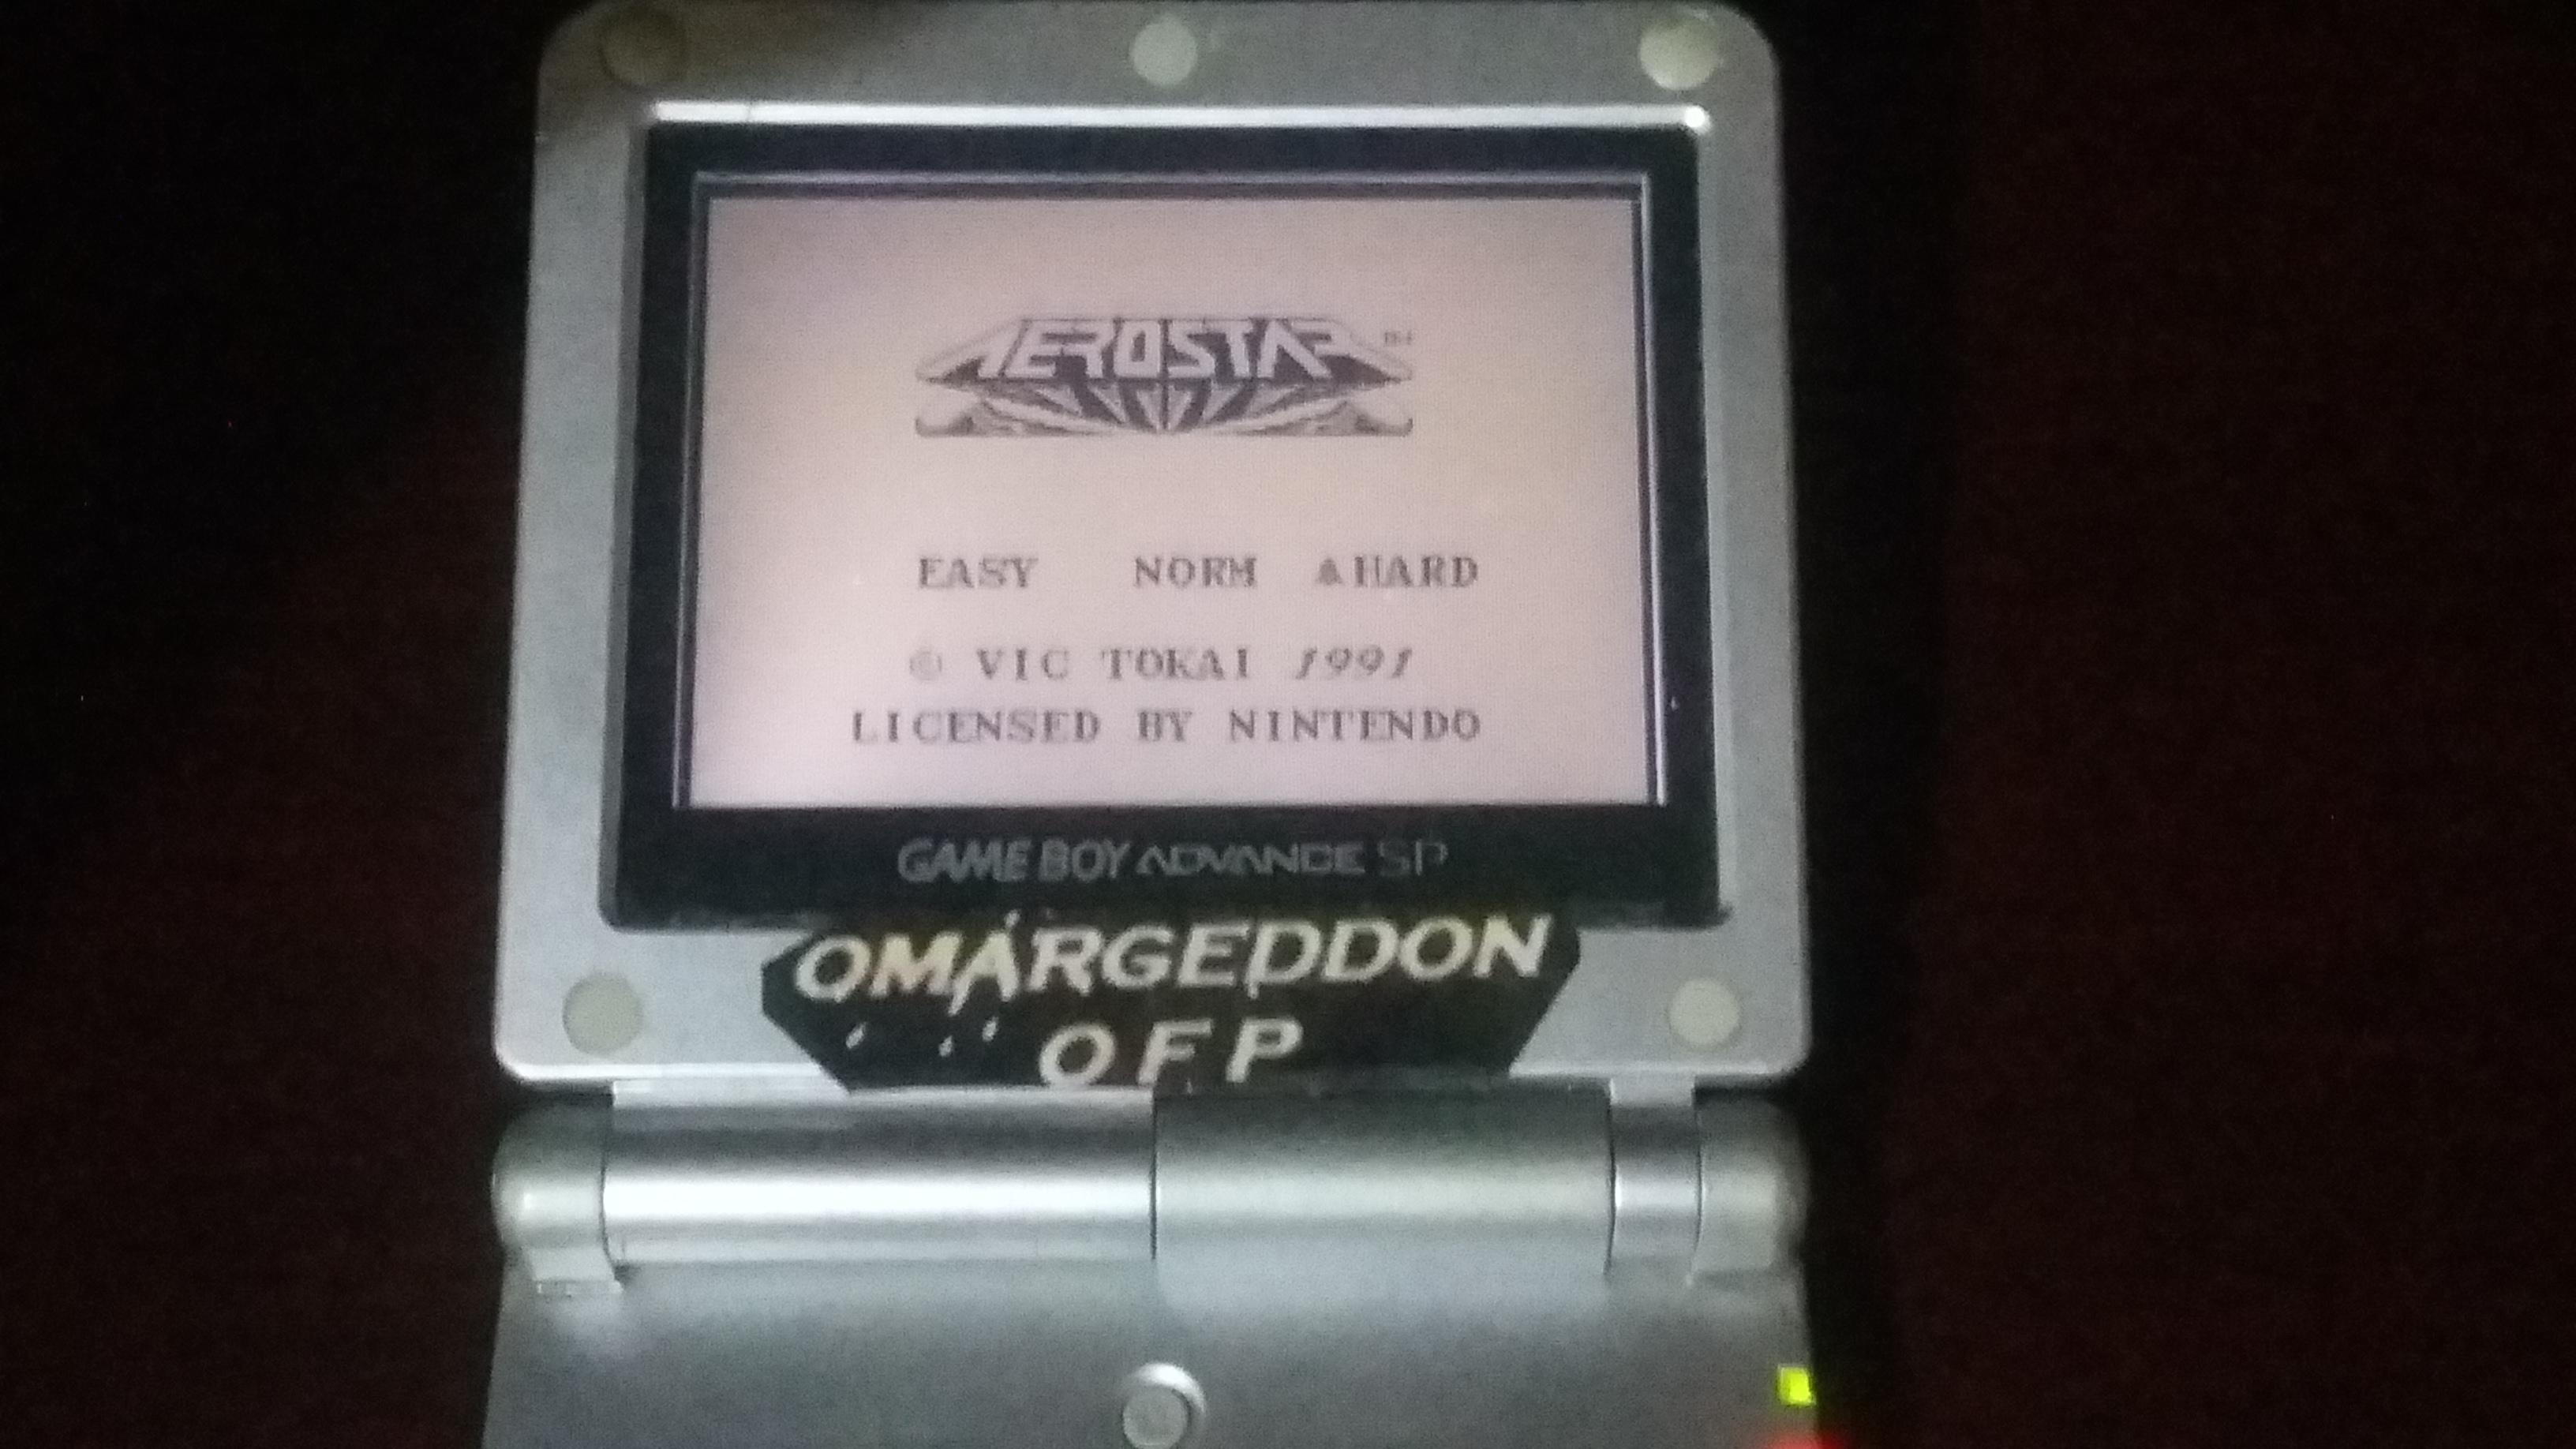 omargeddon: Aero Star [Hard] (Game Boy) 32,200 points on 2018-06-01 20:37:28